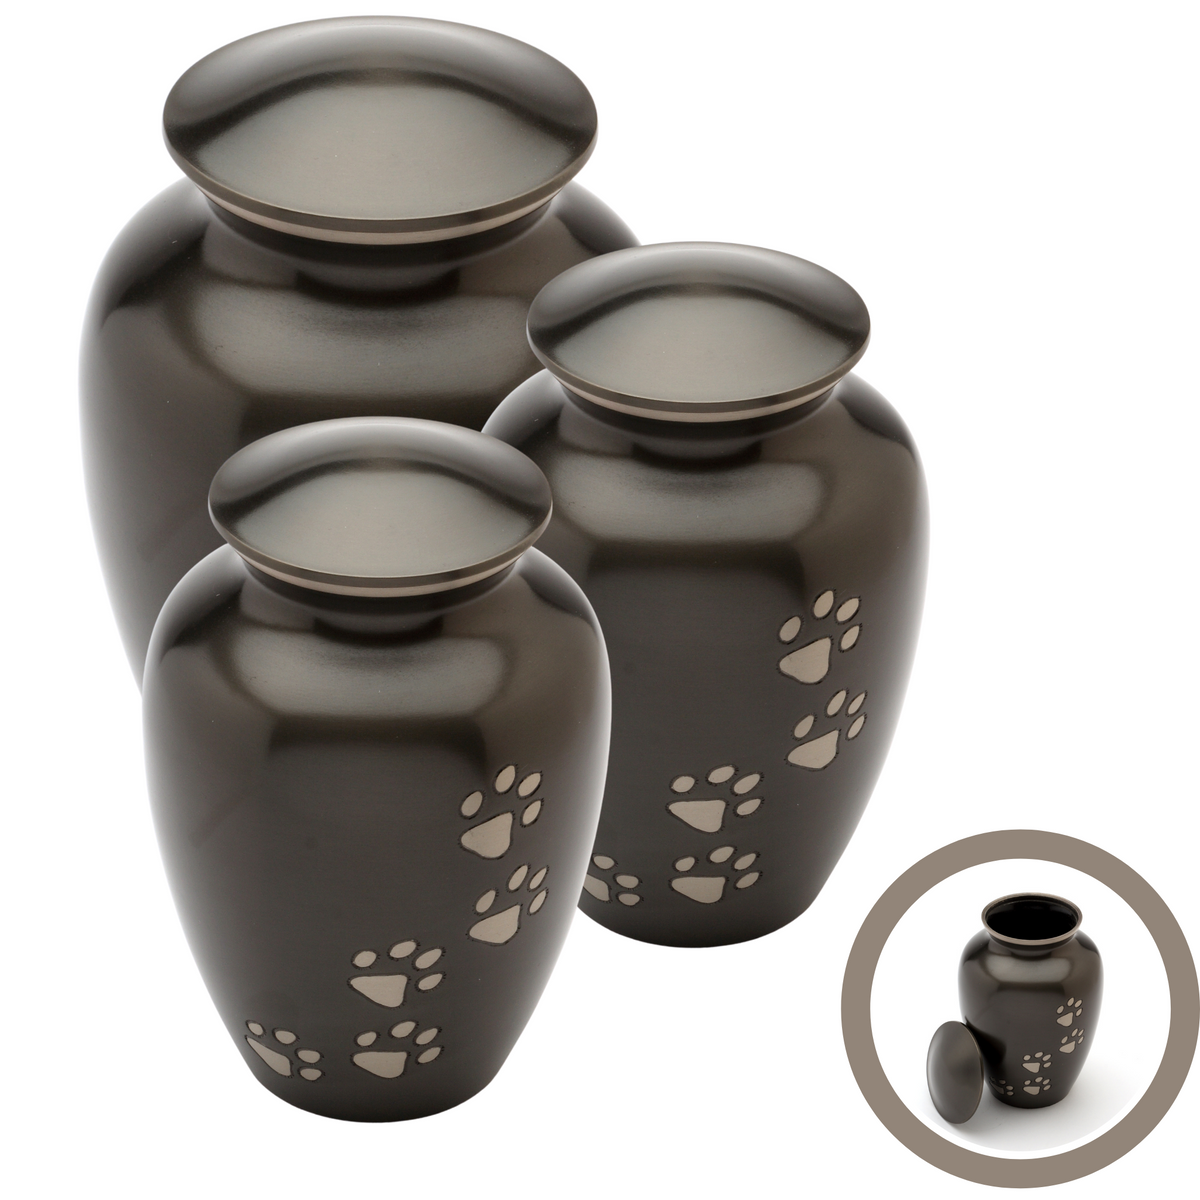 Matlock Black Cremation Ashes Pet Range - Urns UK